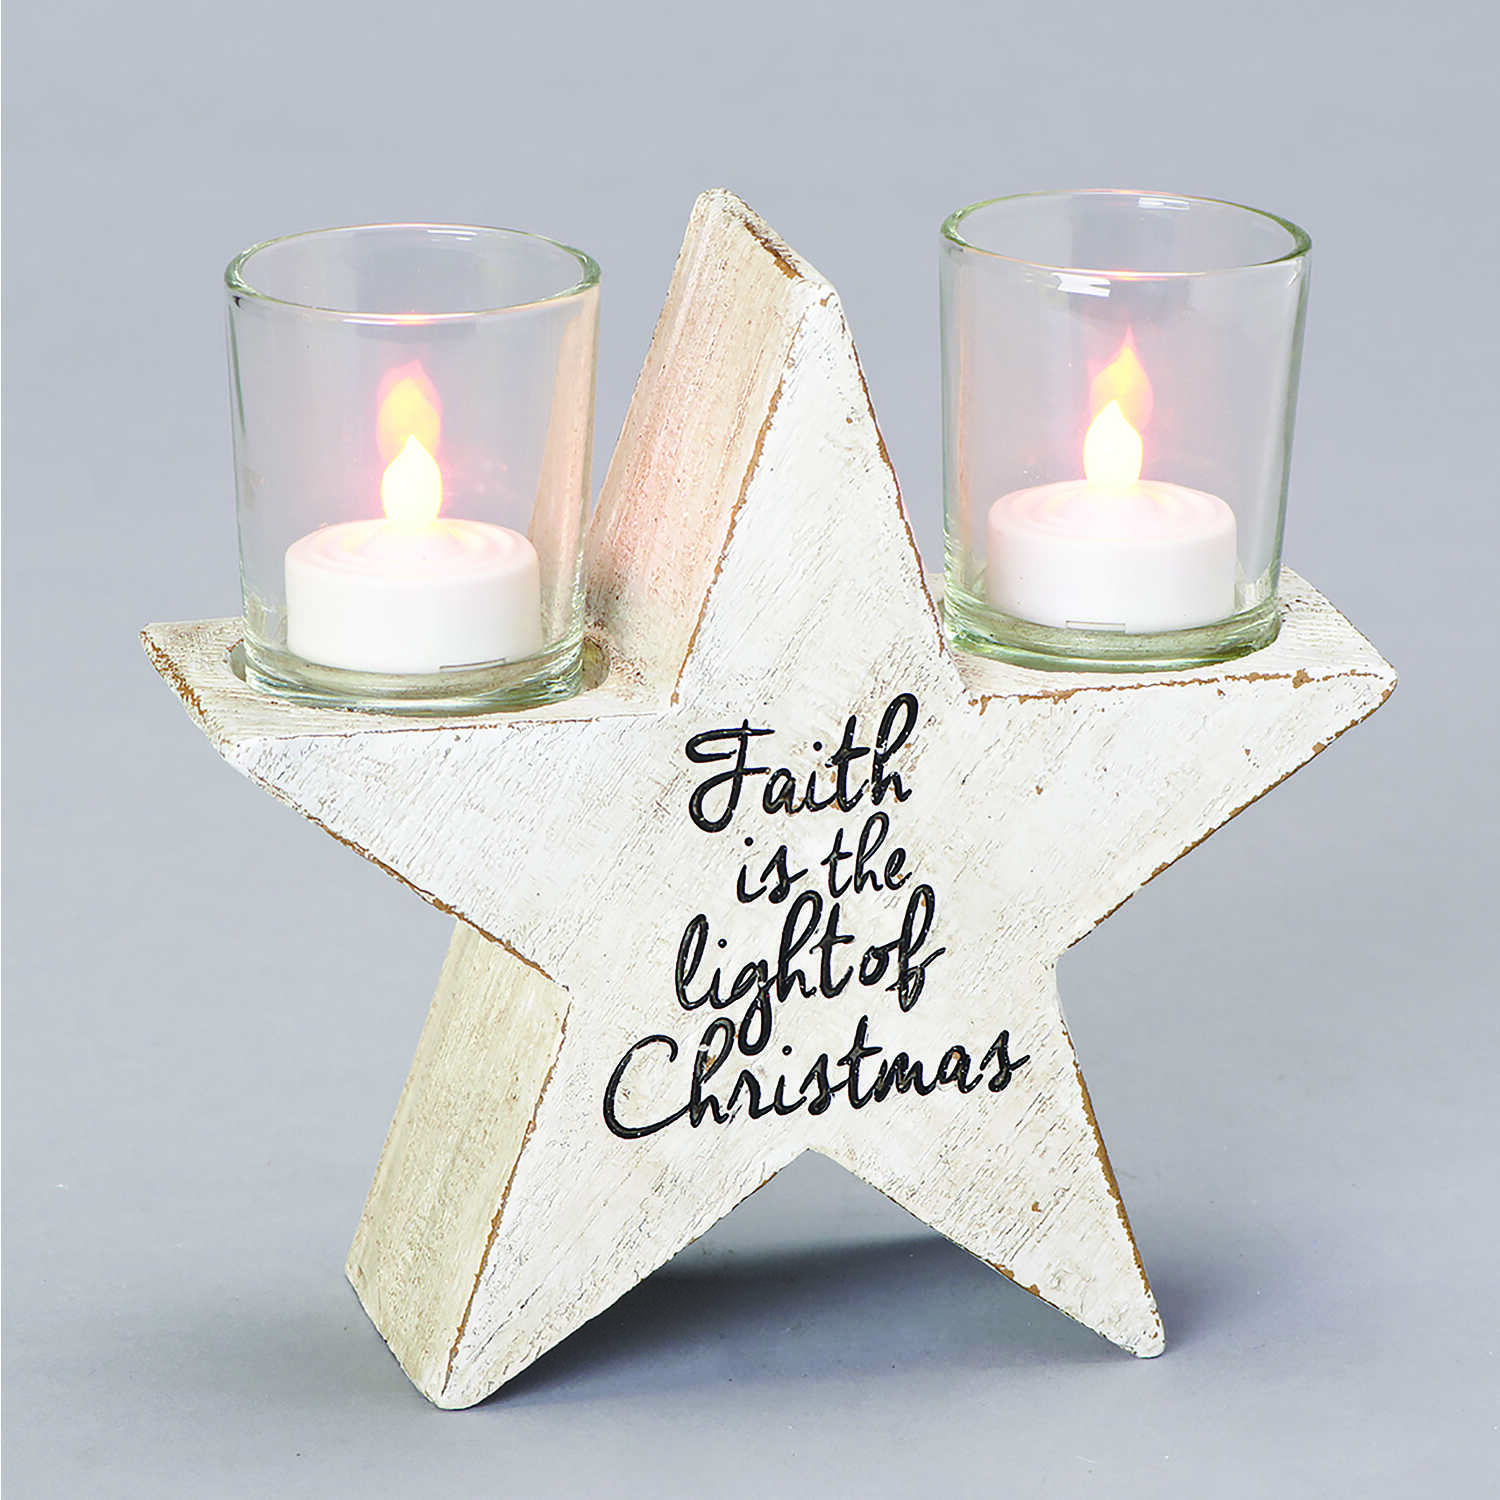 Roman  Rustic Star Candleholder  Christmas Decoration  Resin  1 pk White